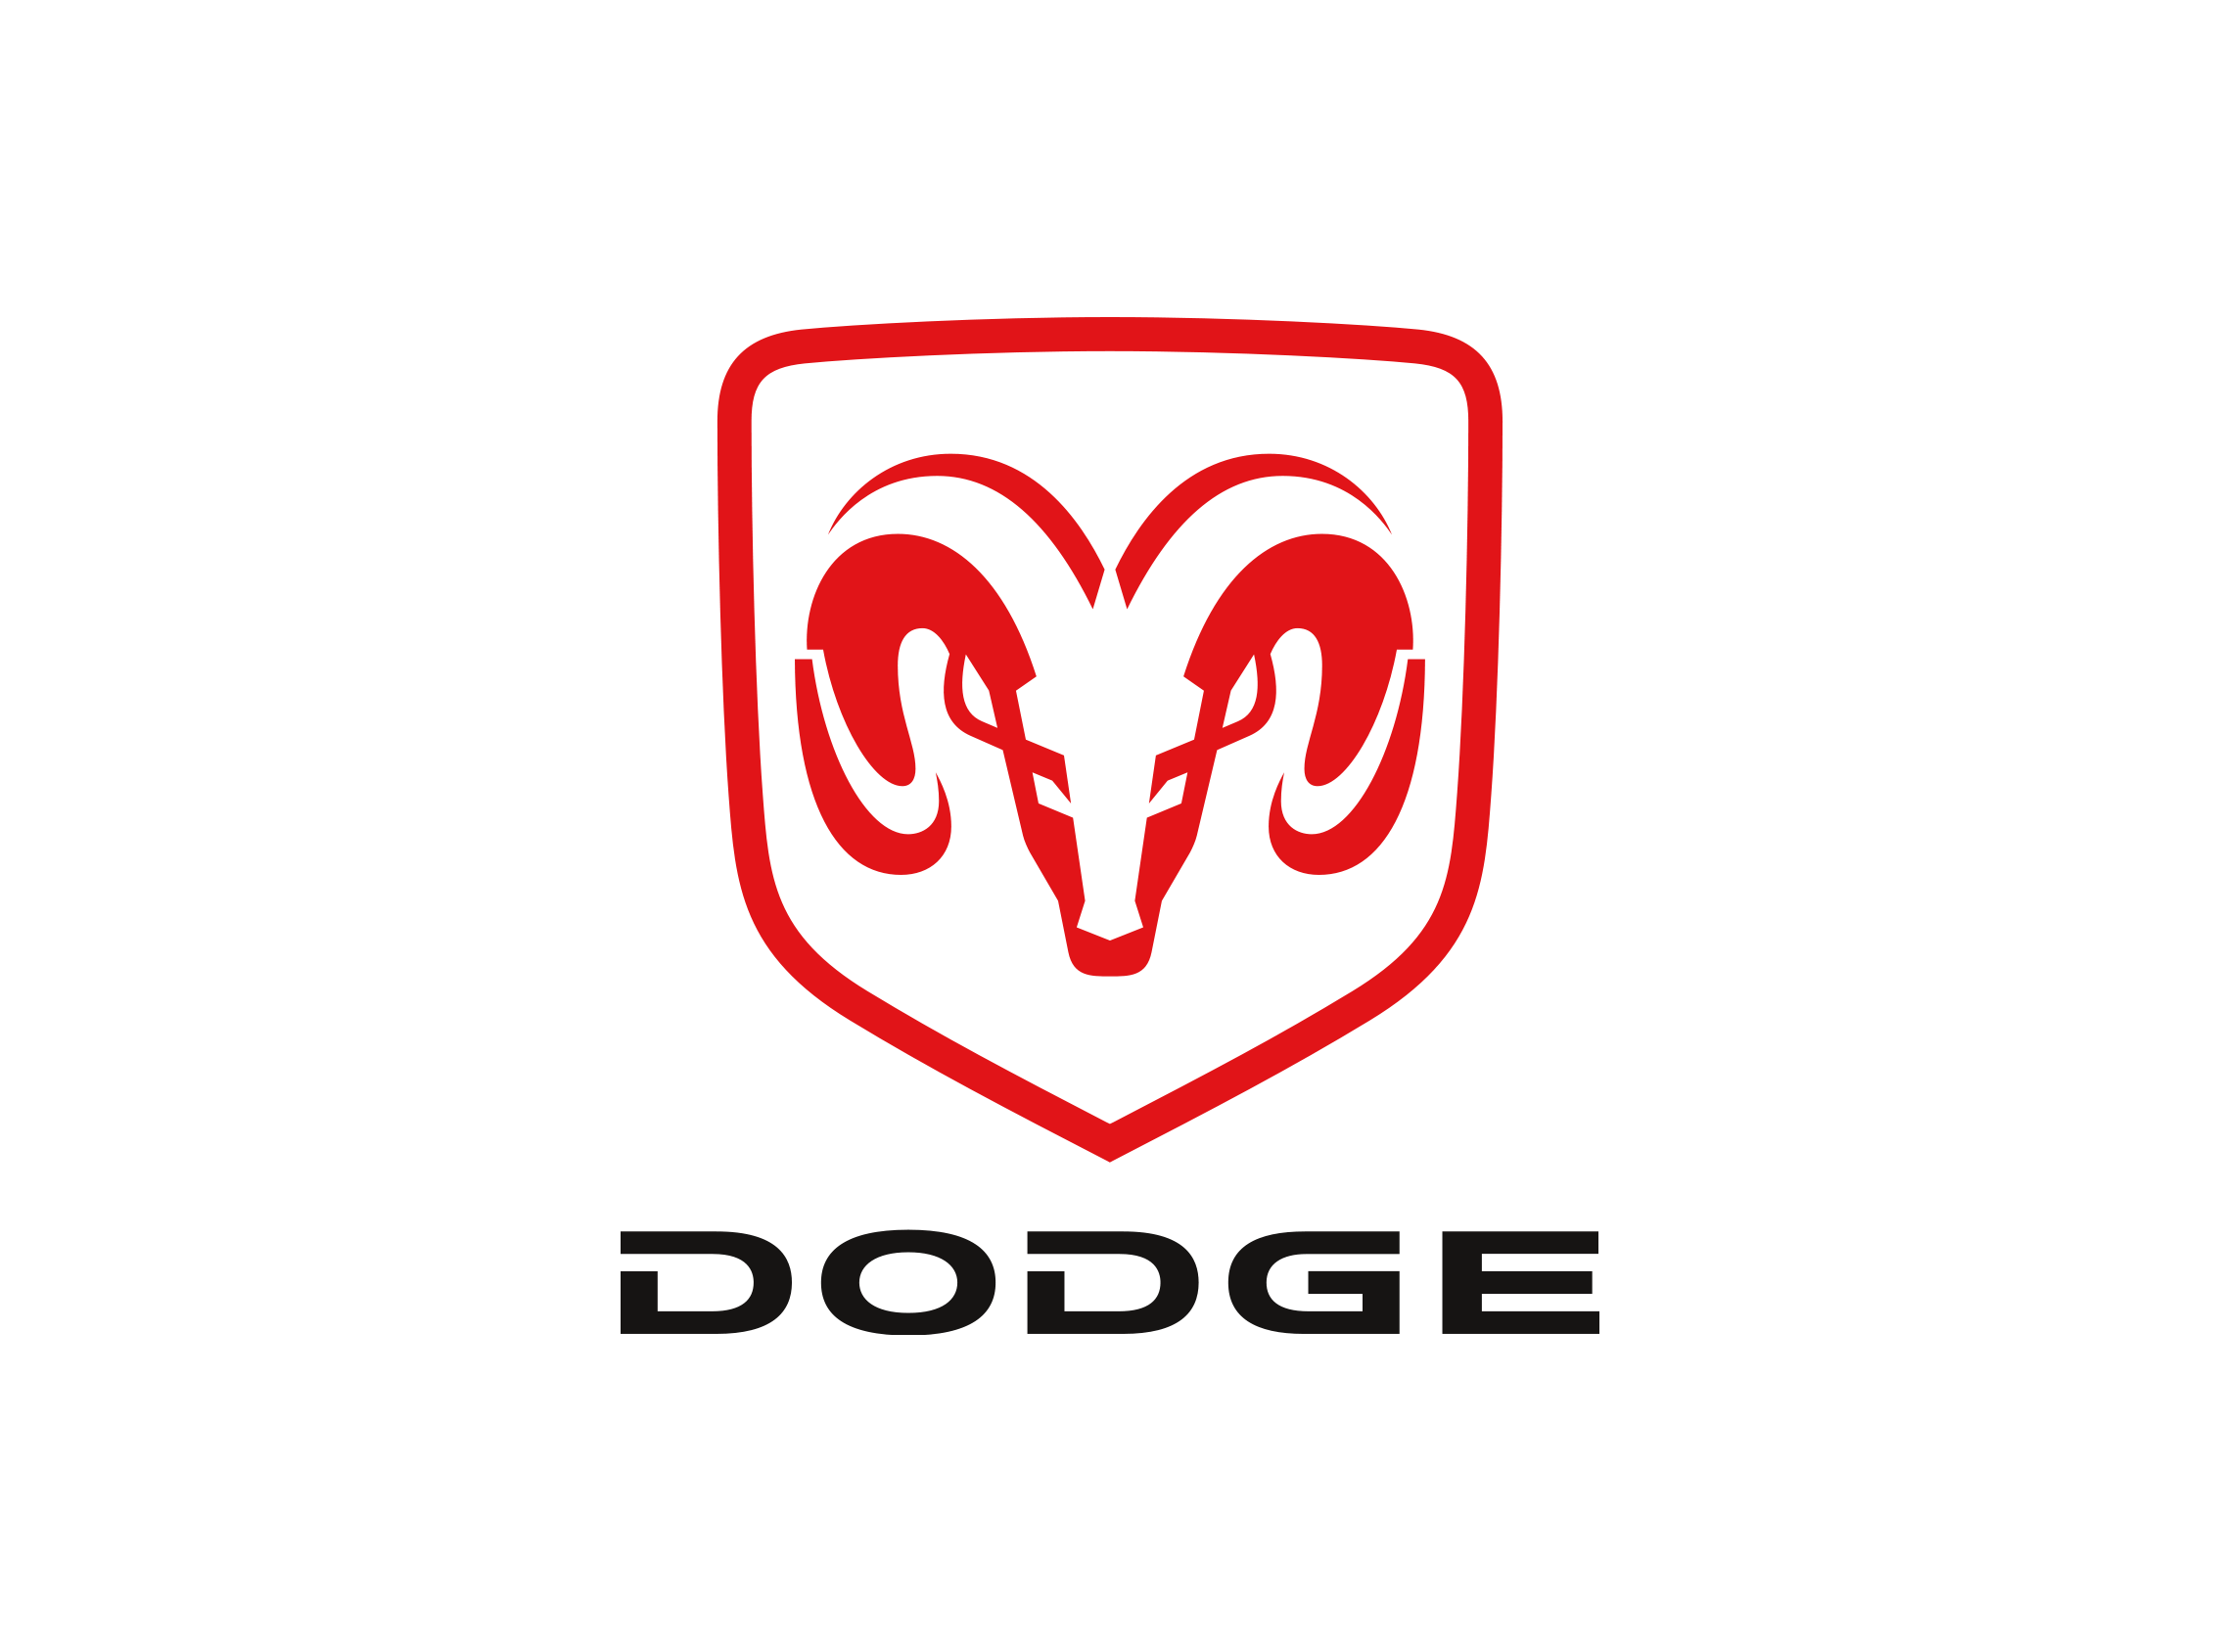 DODGE MOTOR IMPORT BRANDS VOITURE IMPORT USA MIAMI IMPORT VOITURE EUROP IMPORT USA MOTOR IMPORT7 - OPEL DUBAI importation voiture Dubai OPEL importation vehicule emirats arabe unis motorimport